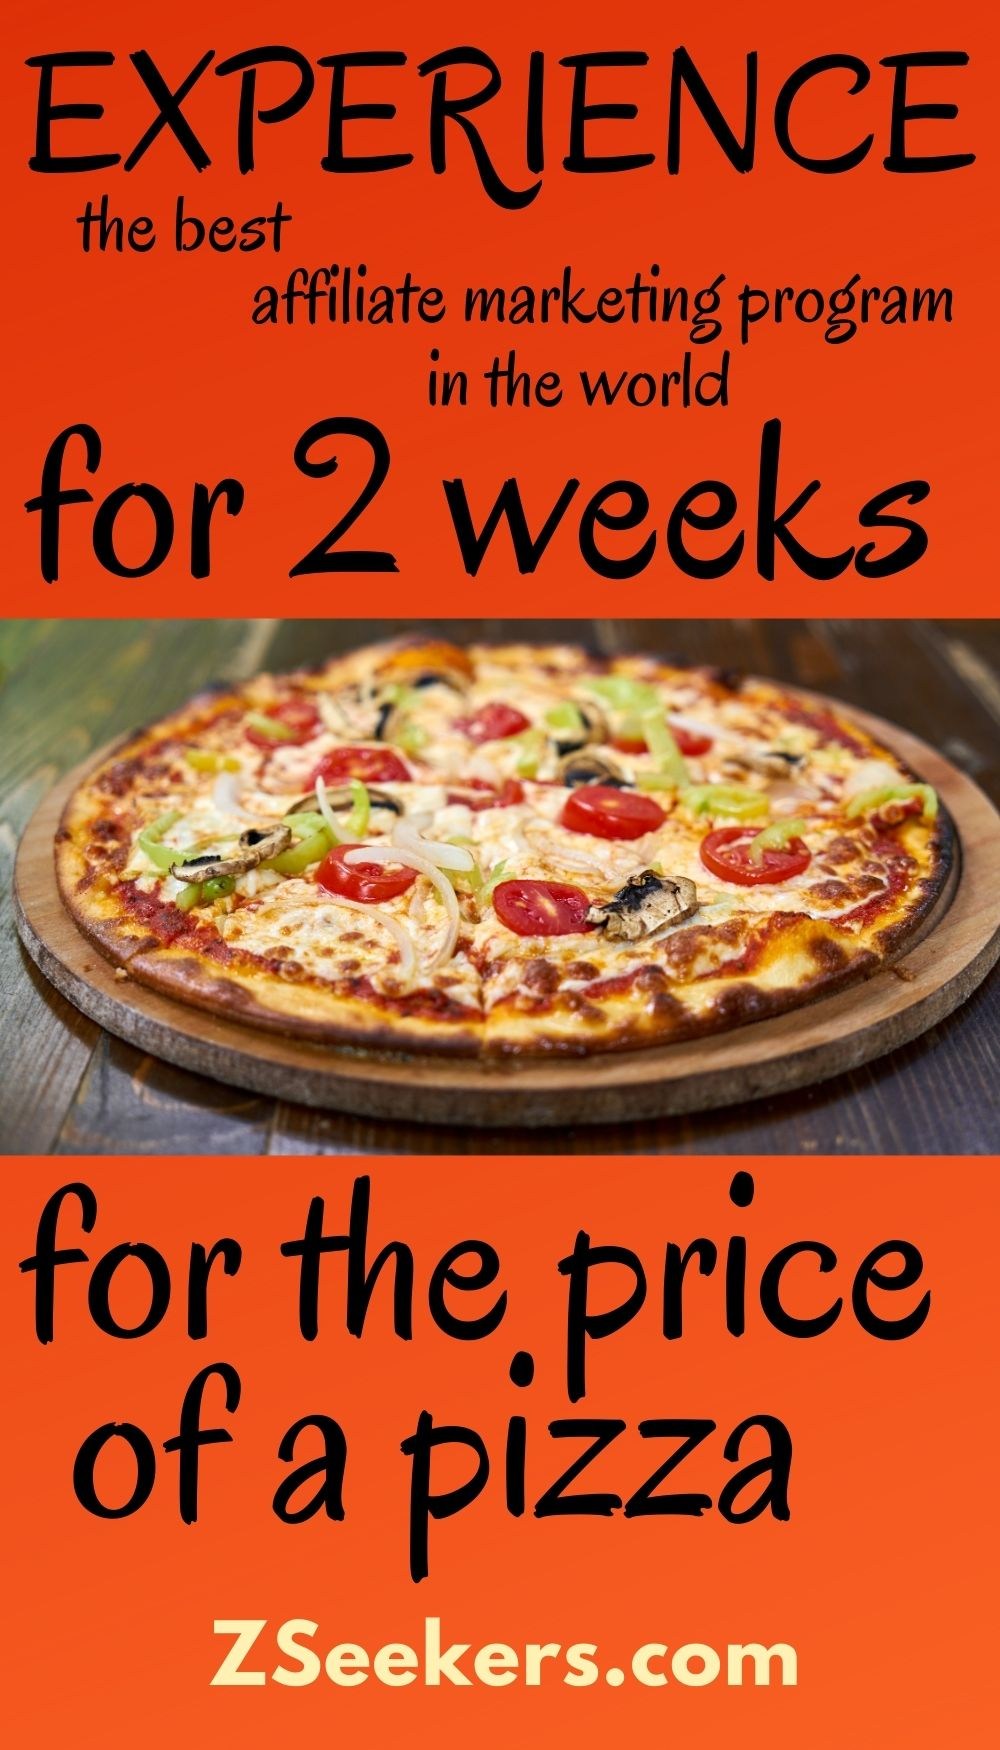 You can experience the best affiliate marketing program in the world for beginners for two weeks, for the price of a pizza